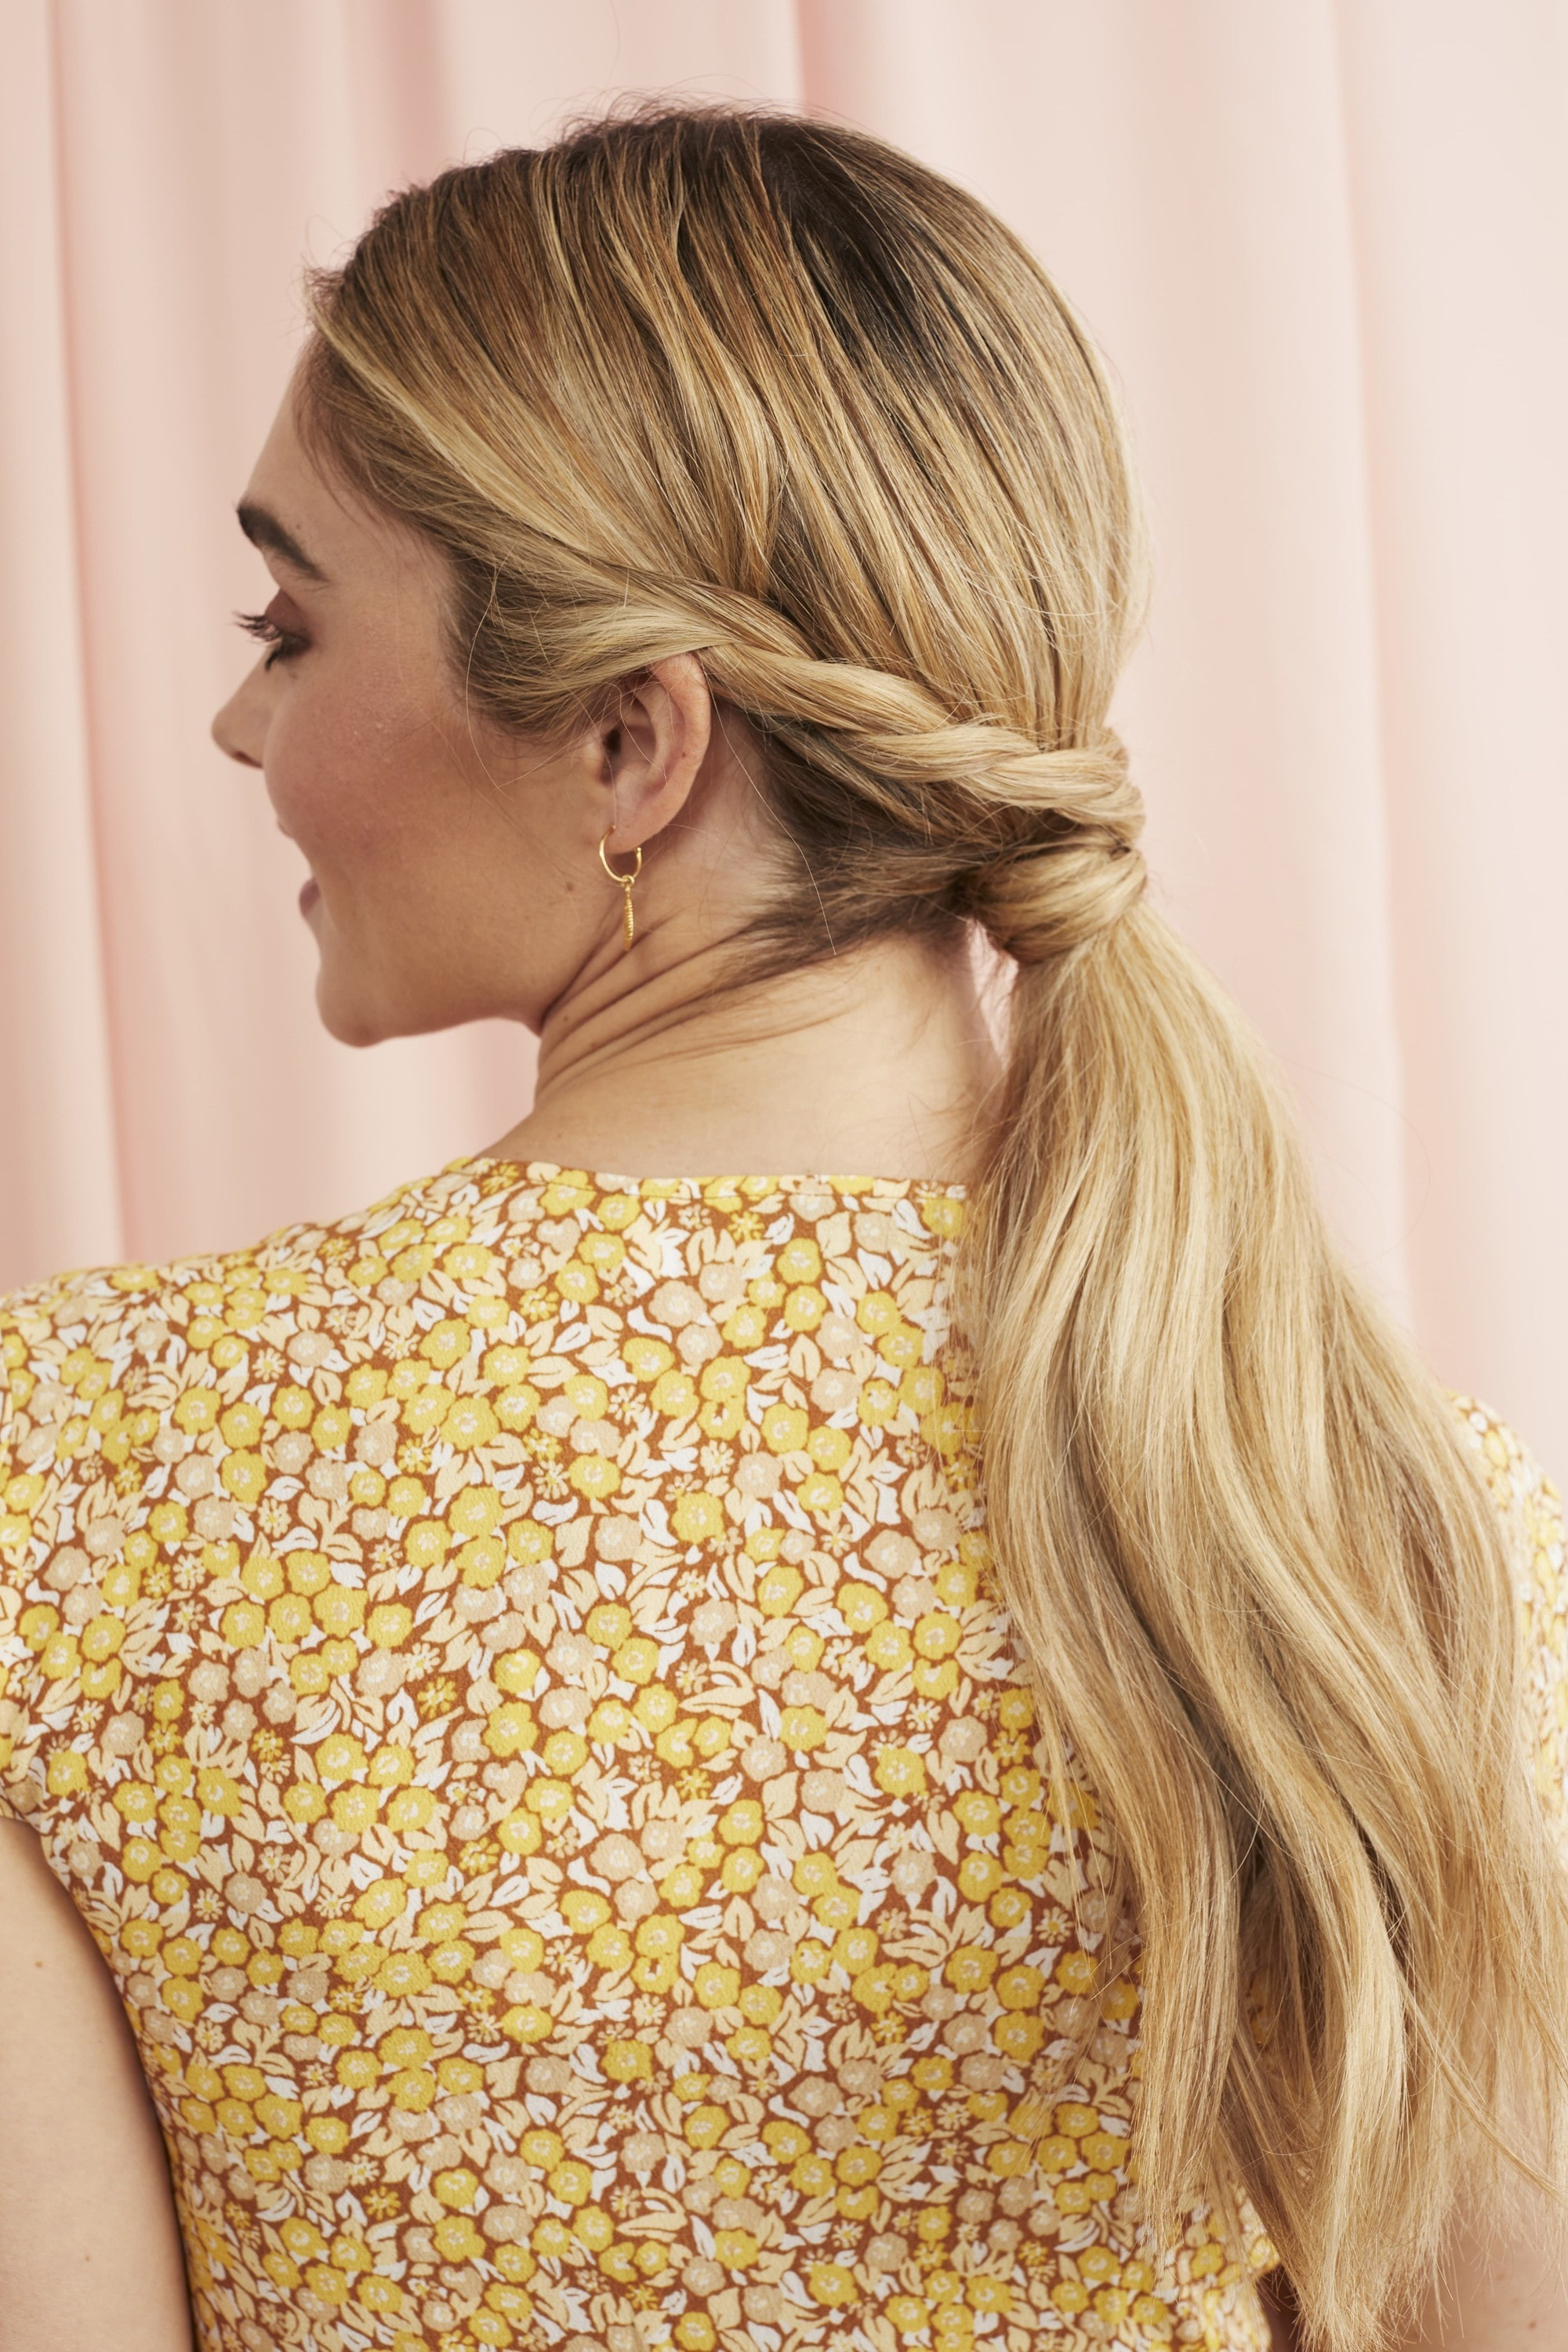 Blonde woman with a twisted low ponytail